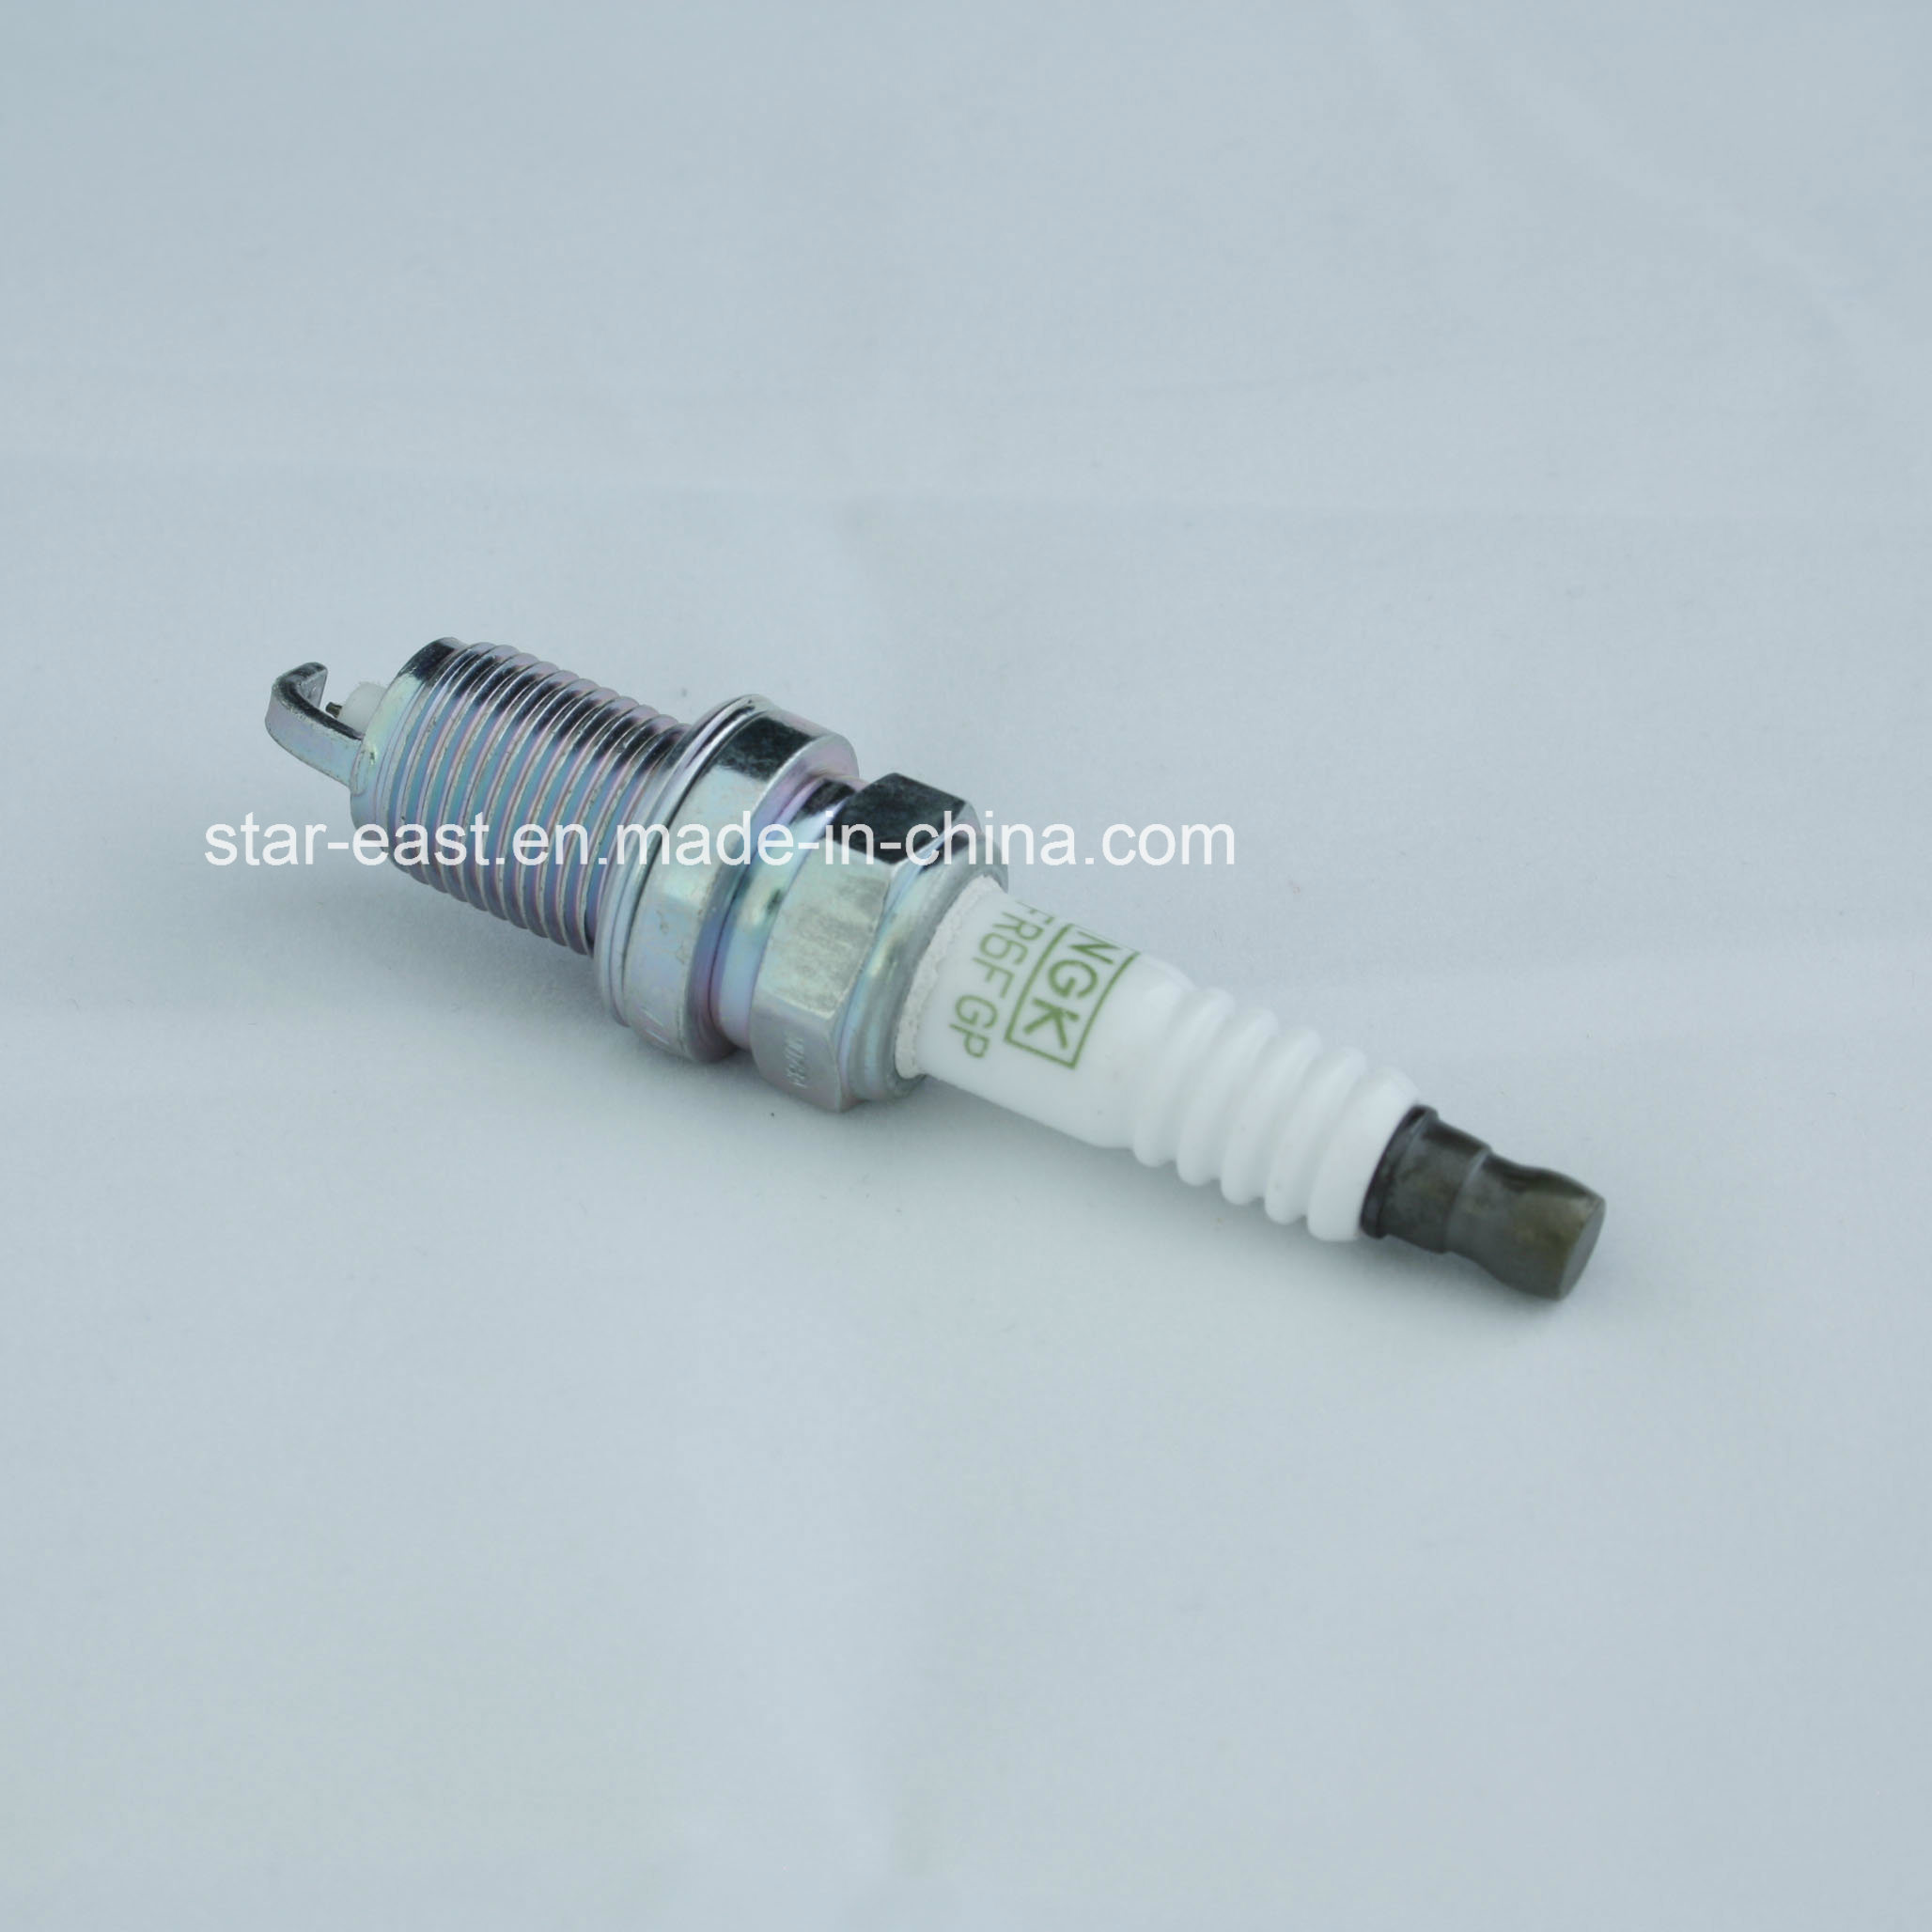 Hight Quality Spark Plug for Ngk Zfr6fgp Honda/Mazda